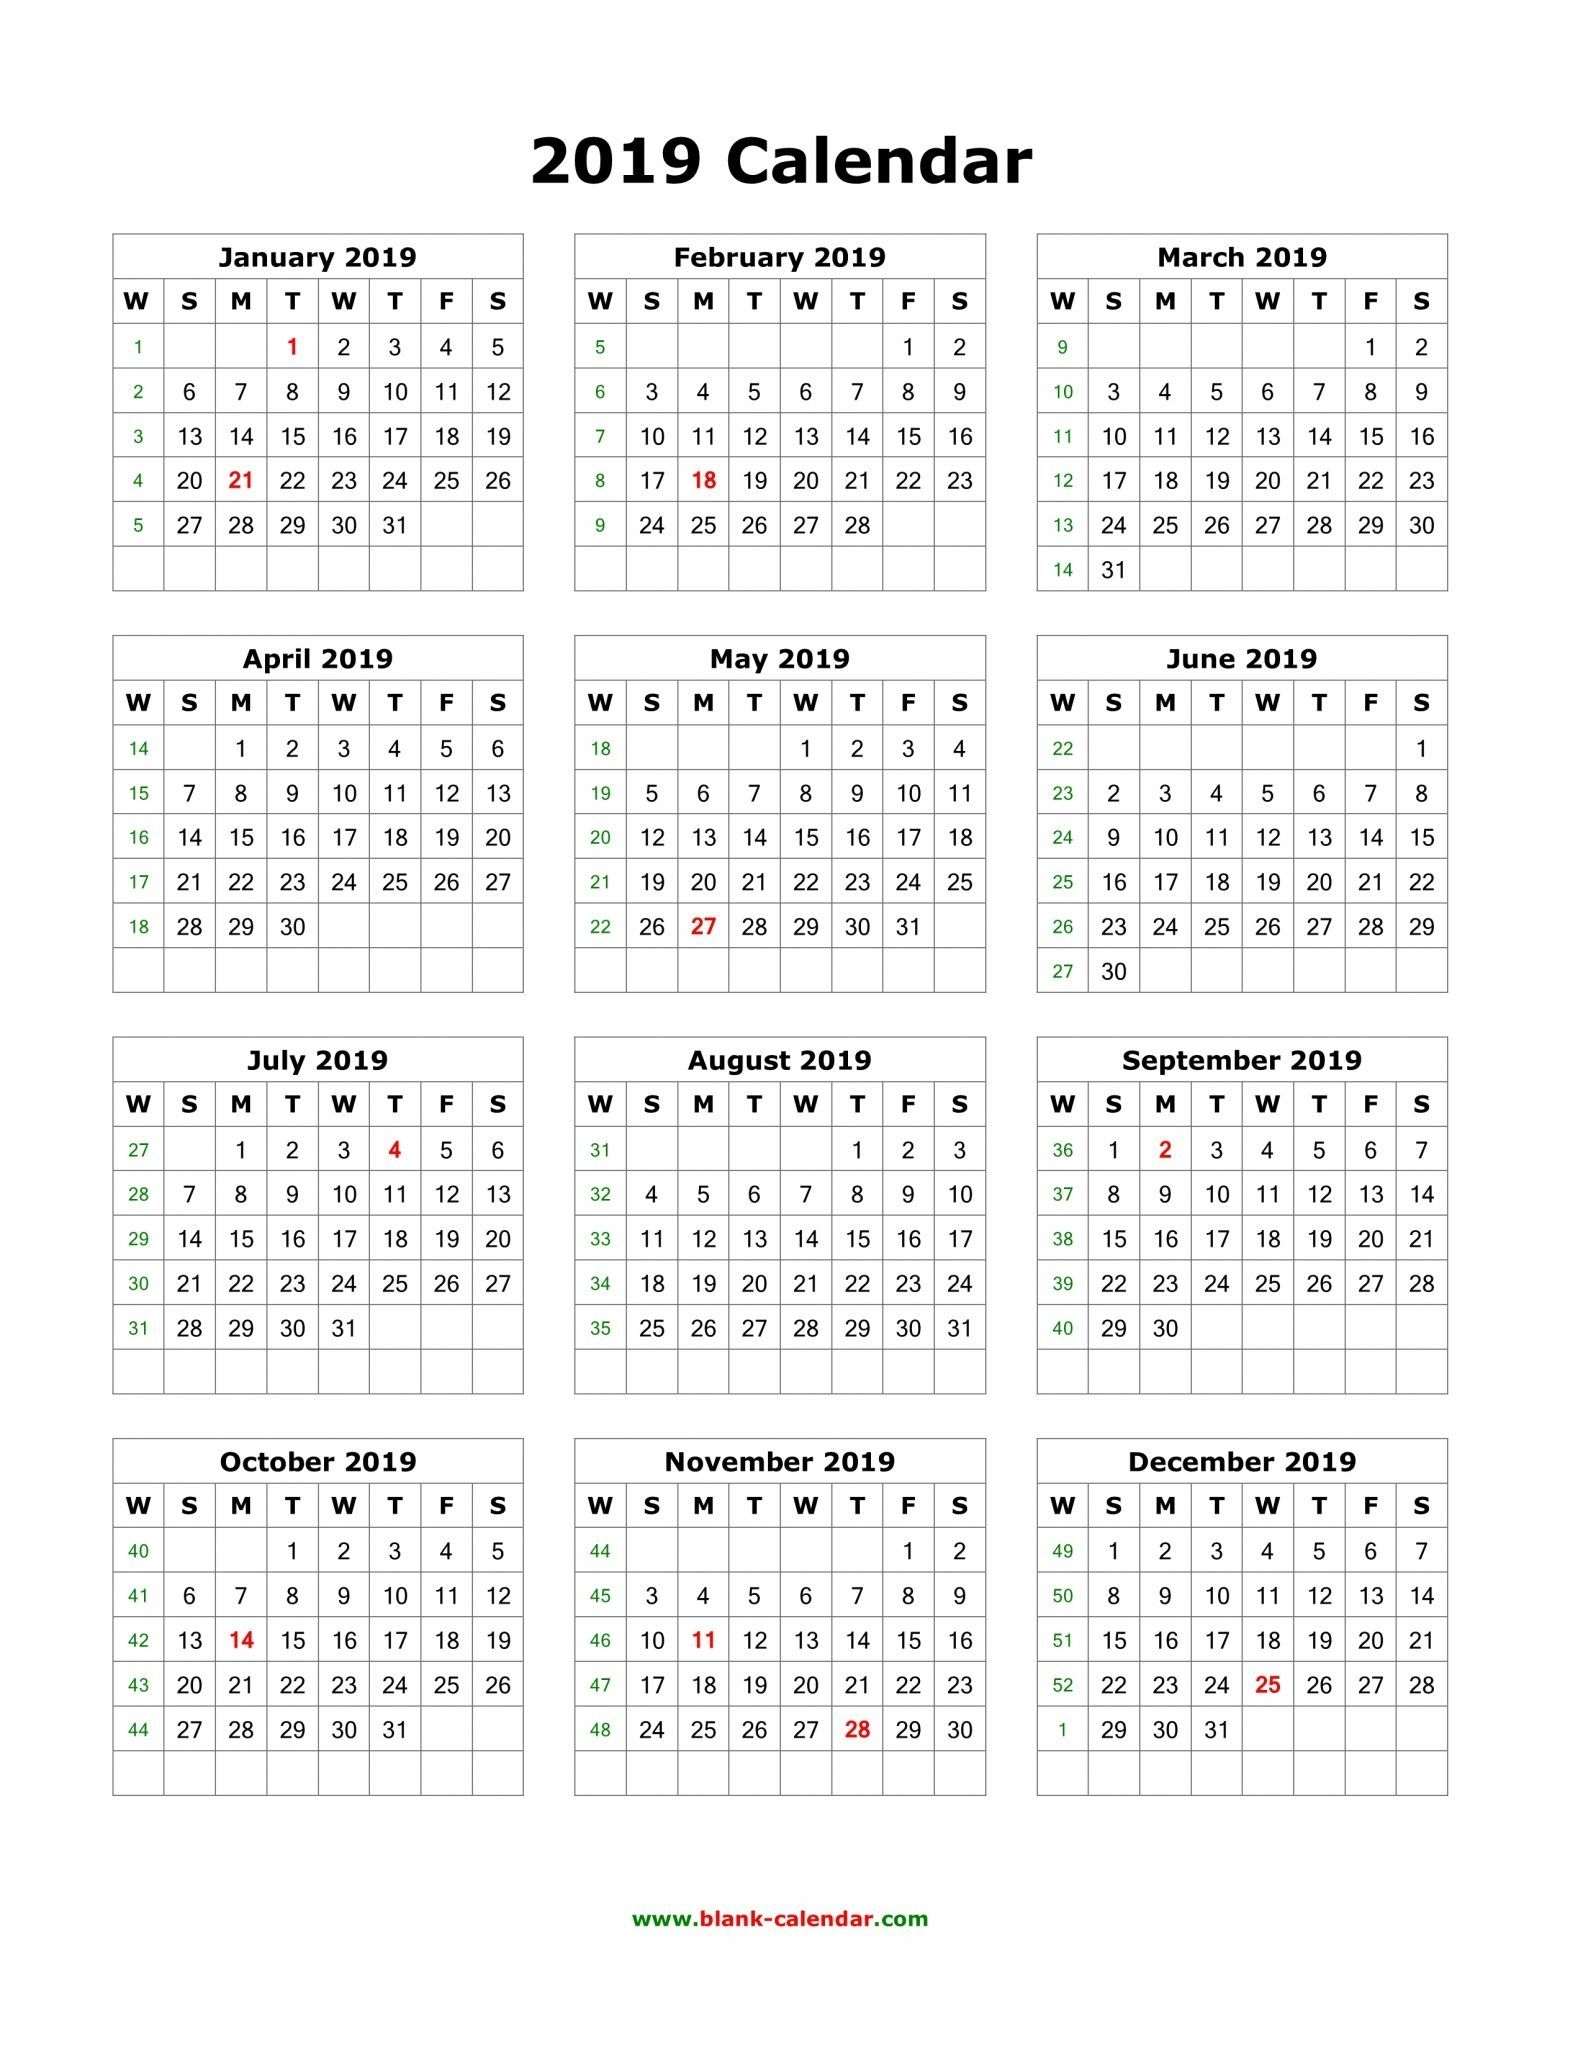 Download Blank 2019 Calendar Templates | Printable Yearly